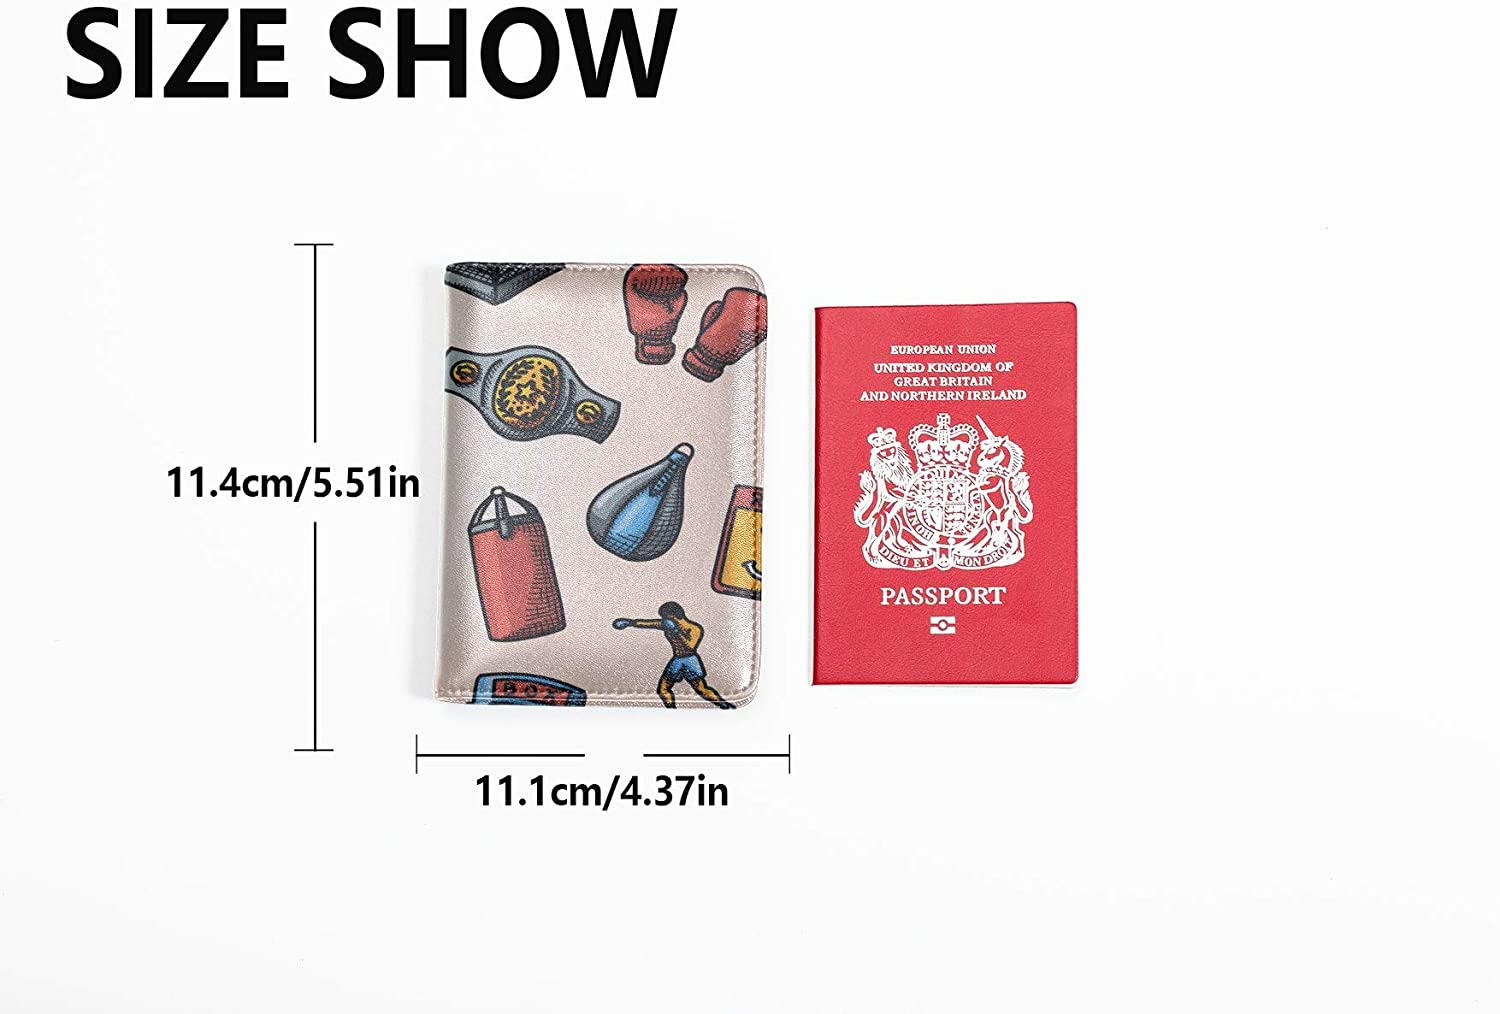 Passport Cover Holder For Women Cute Colored Creative Boxing Gloves Men Passport Case Multi Purpose Print Passport Cover With Holder Travel Wallets For Unisex 5.51x4.37 Inch